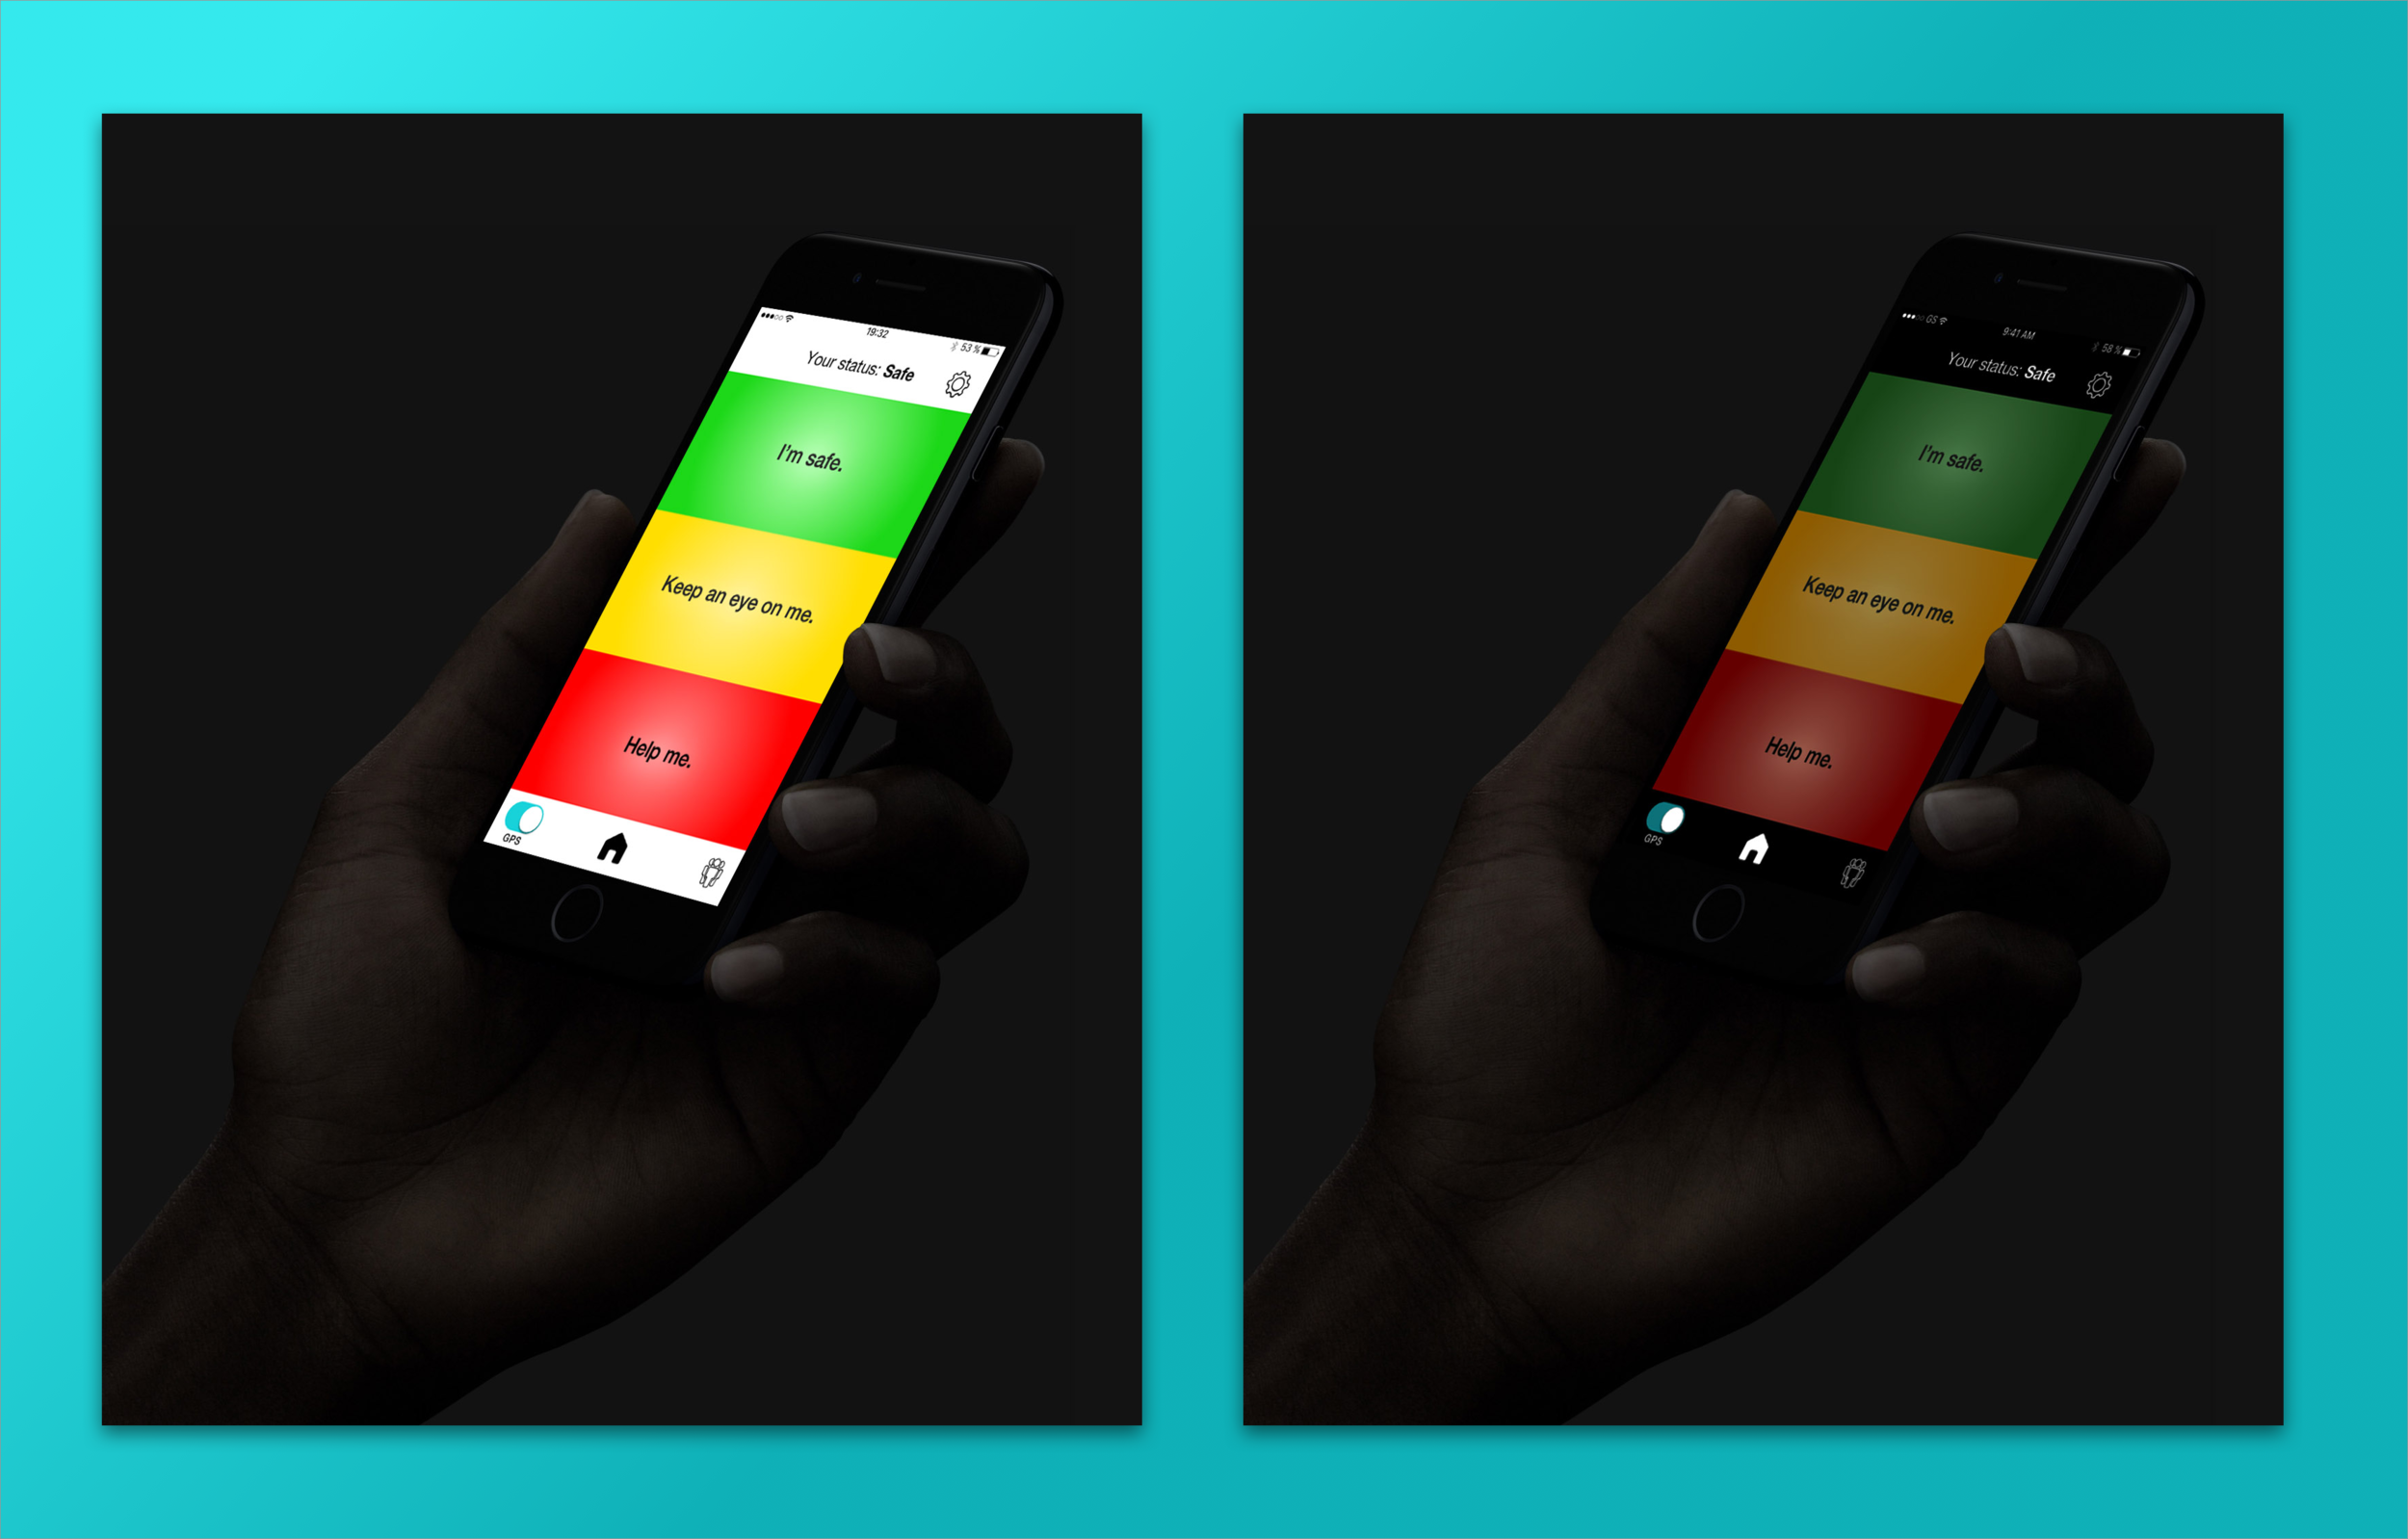 When calling for help, users will likely be using their phone at night, and being discreet is a requirement. Because the mockup uses bold colors, a dark interface is necessary to maintain secrecy. A bright interface would be far too bold and would not fulfill the user's need to be discreet.